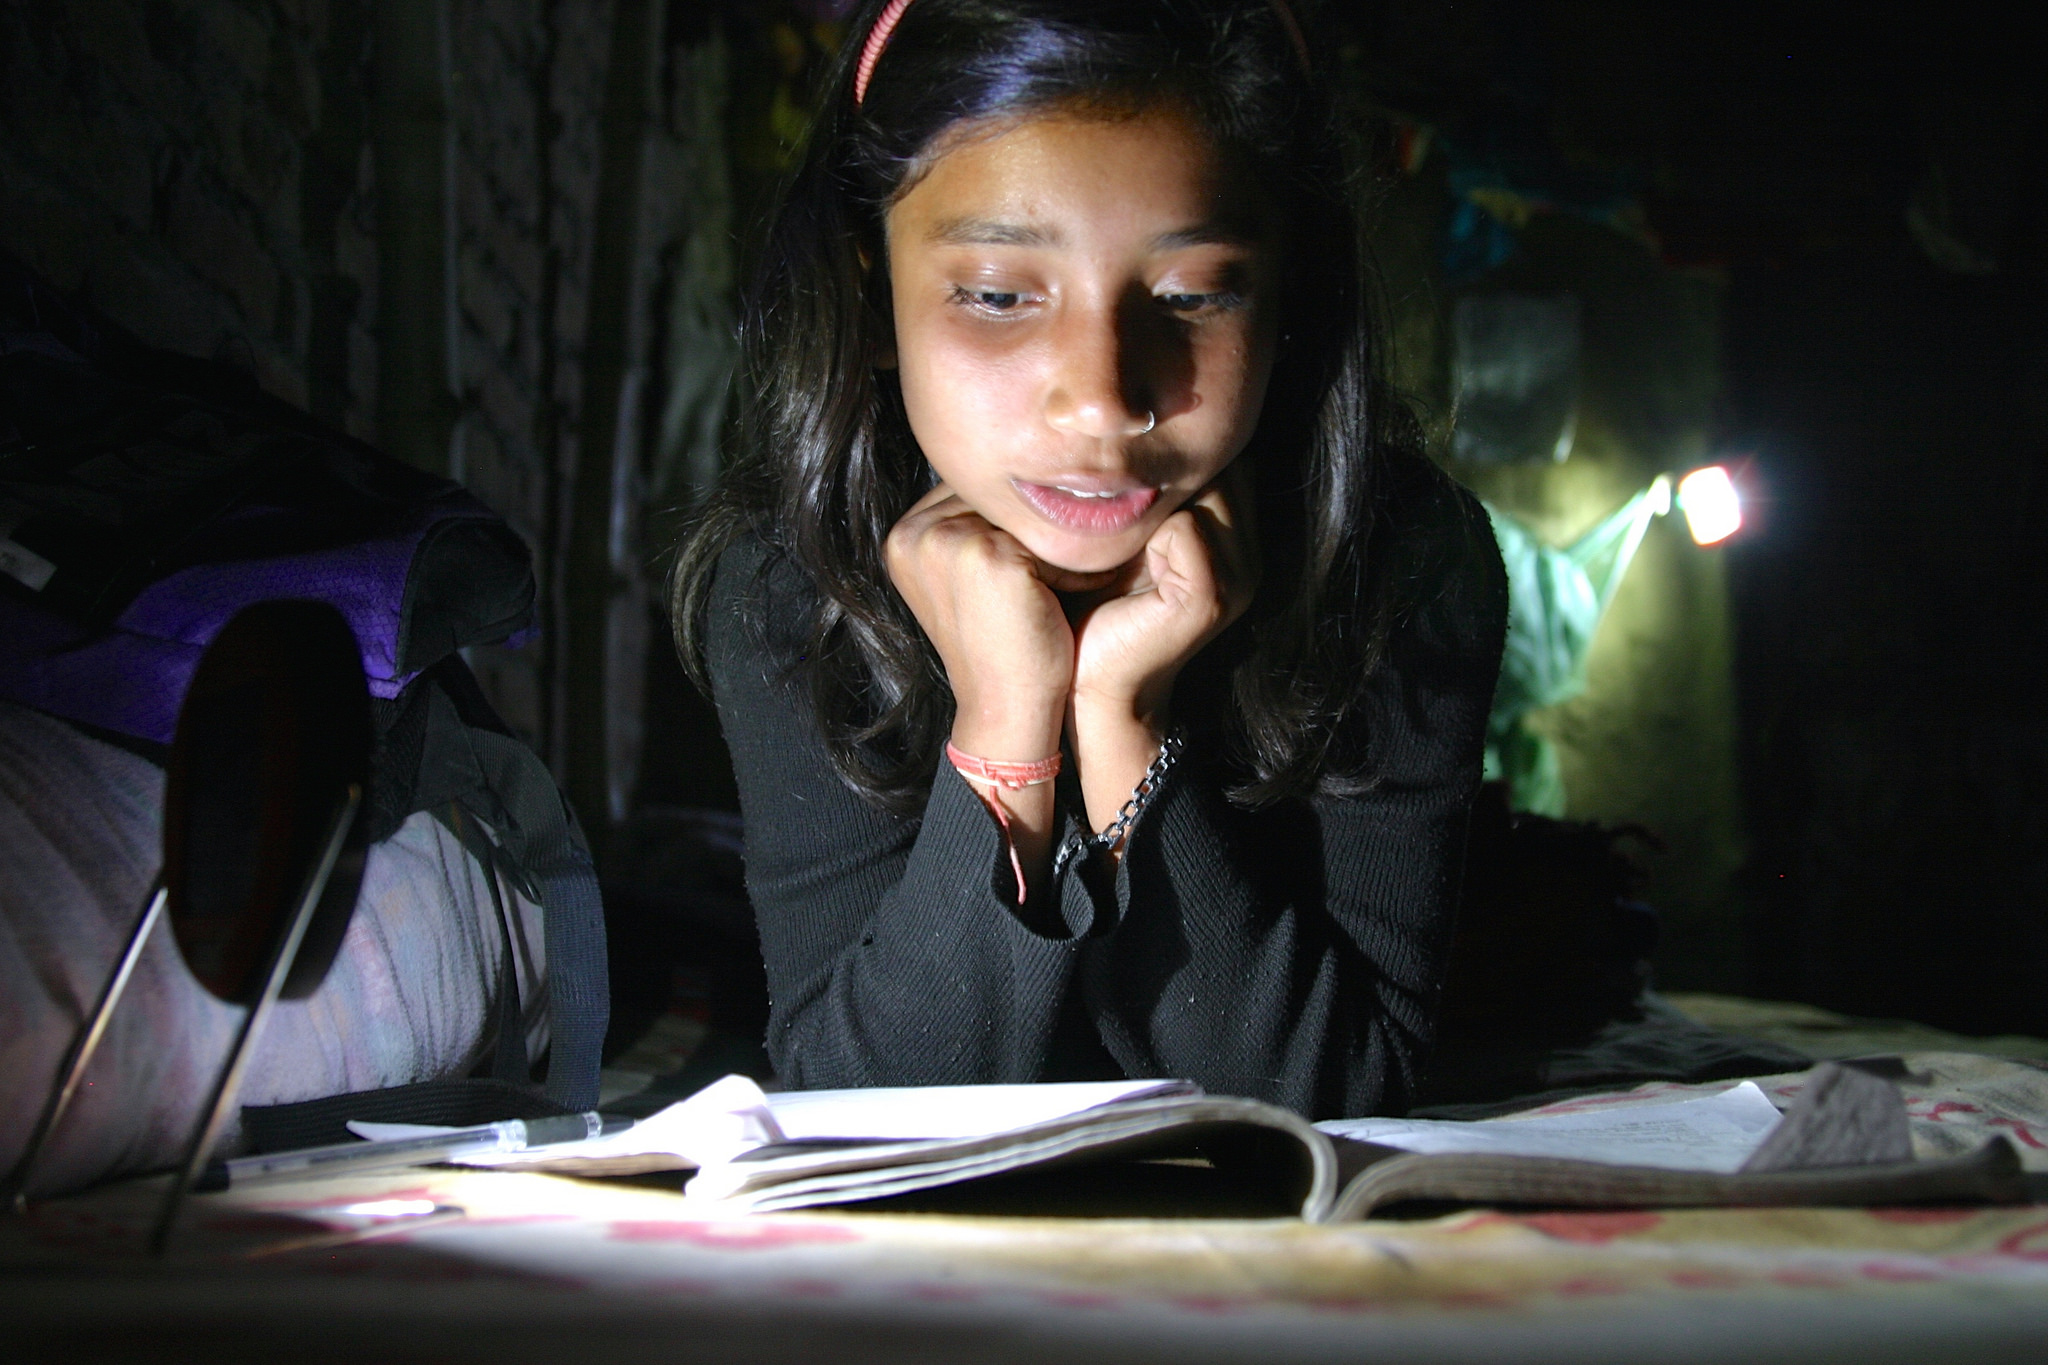 Priya is one of Runa Jha's three children and she loves to study more with solar light and wants to become a scientist!